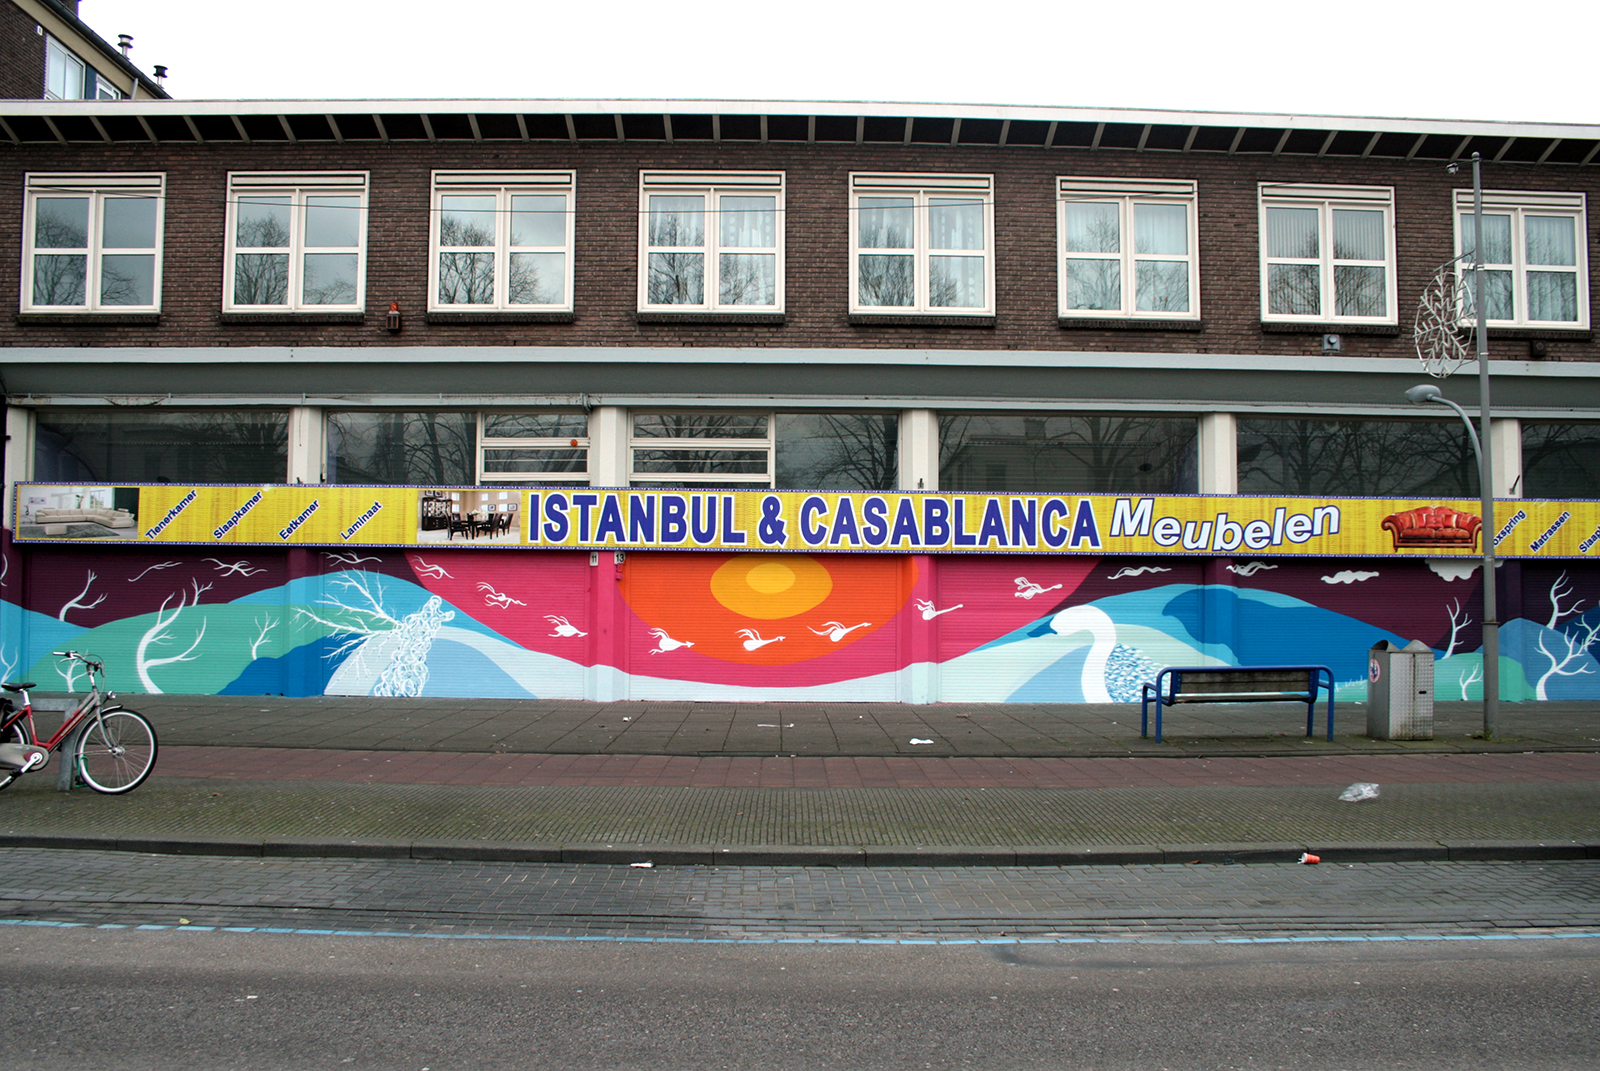 gola-hundun-4-seasons-new-mural-in-amsterdam-01